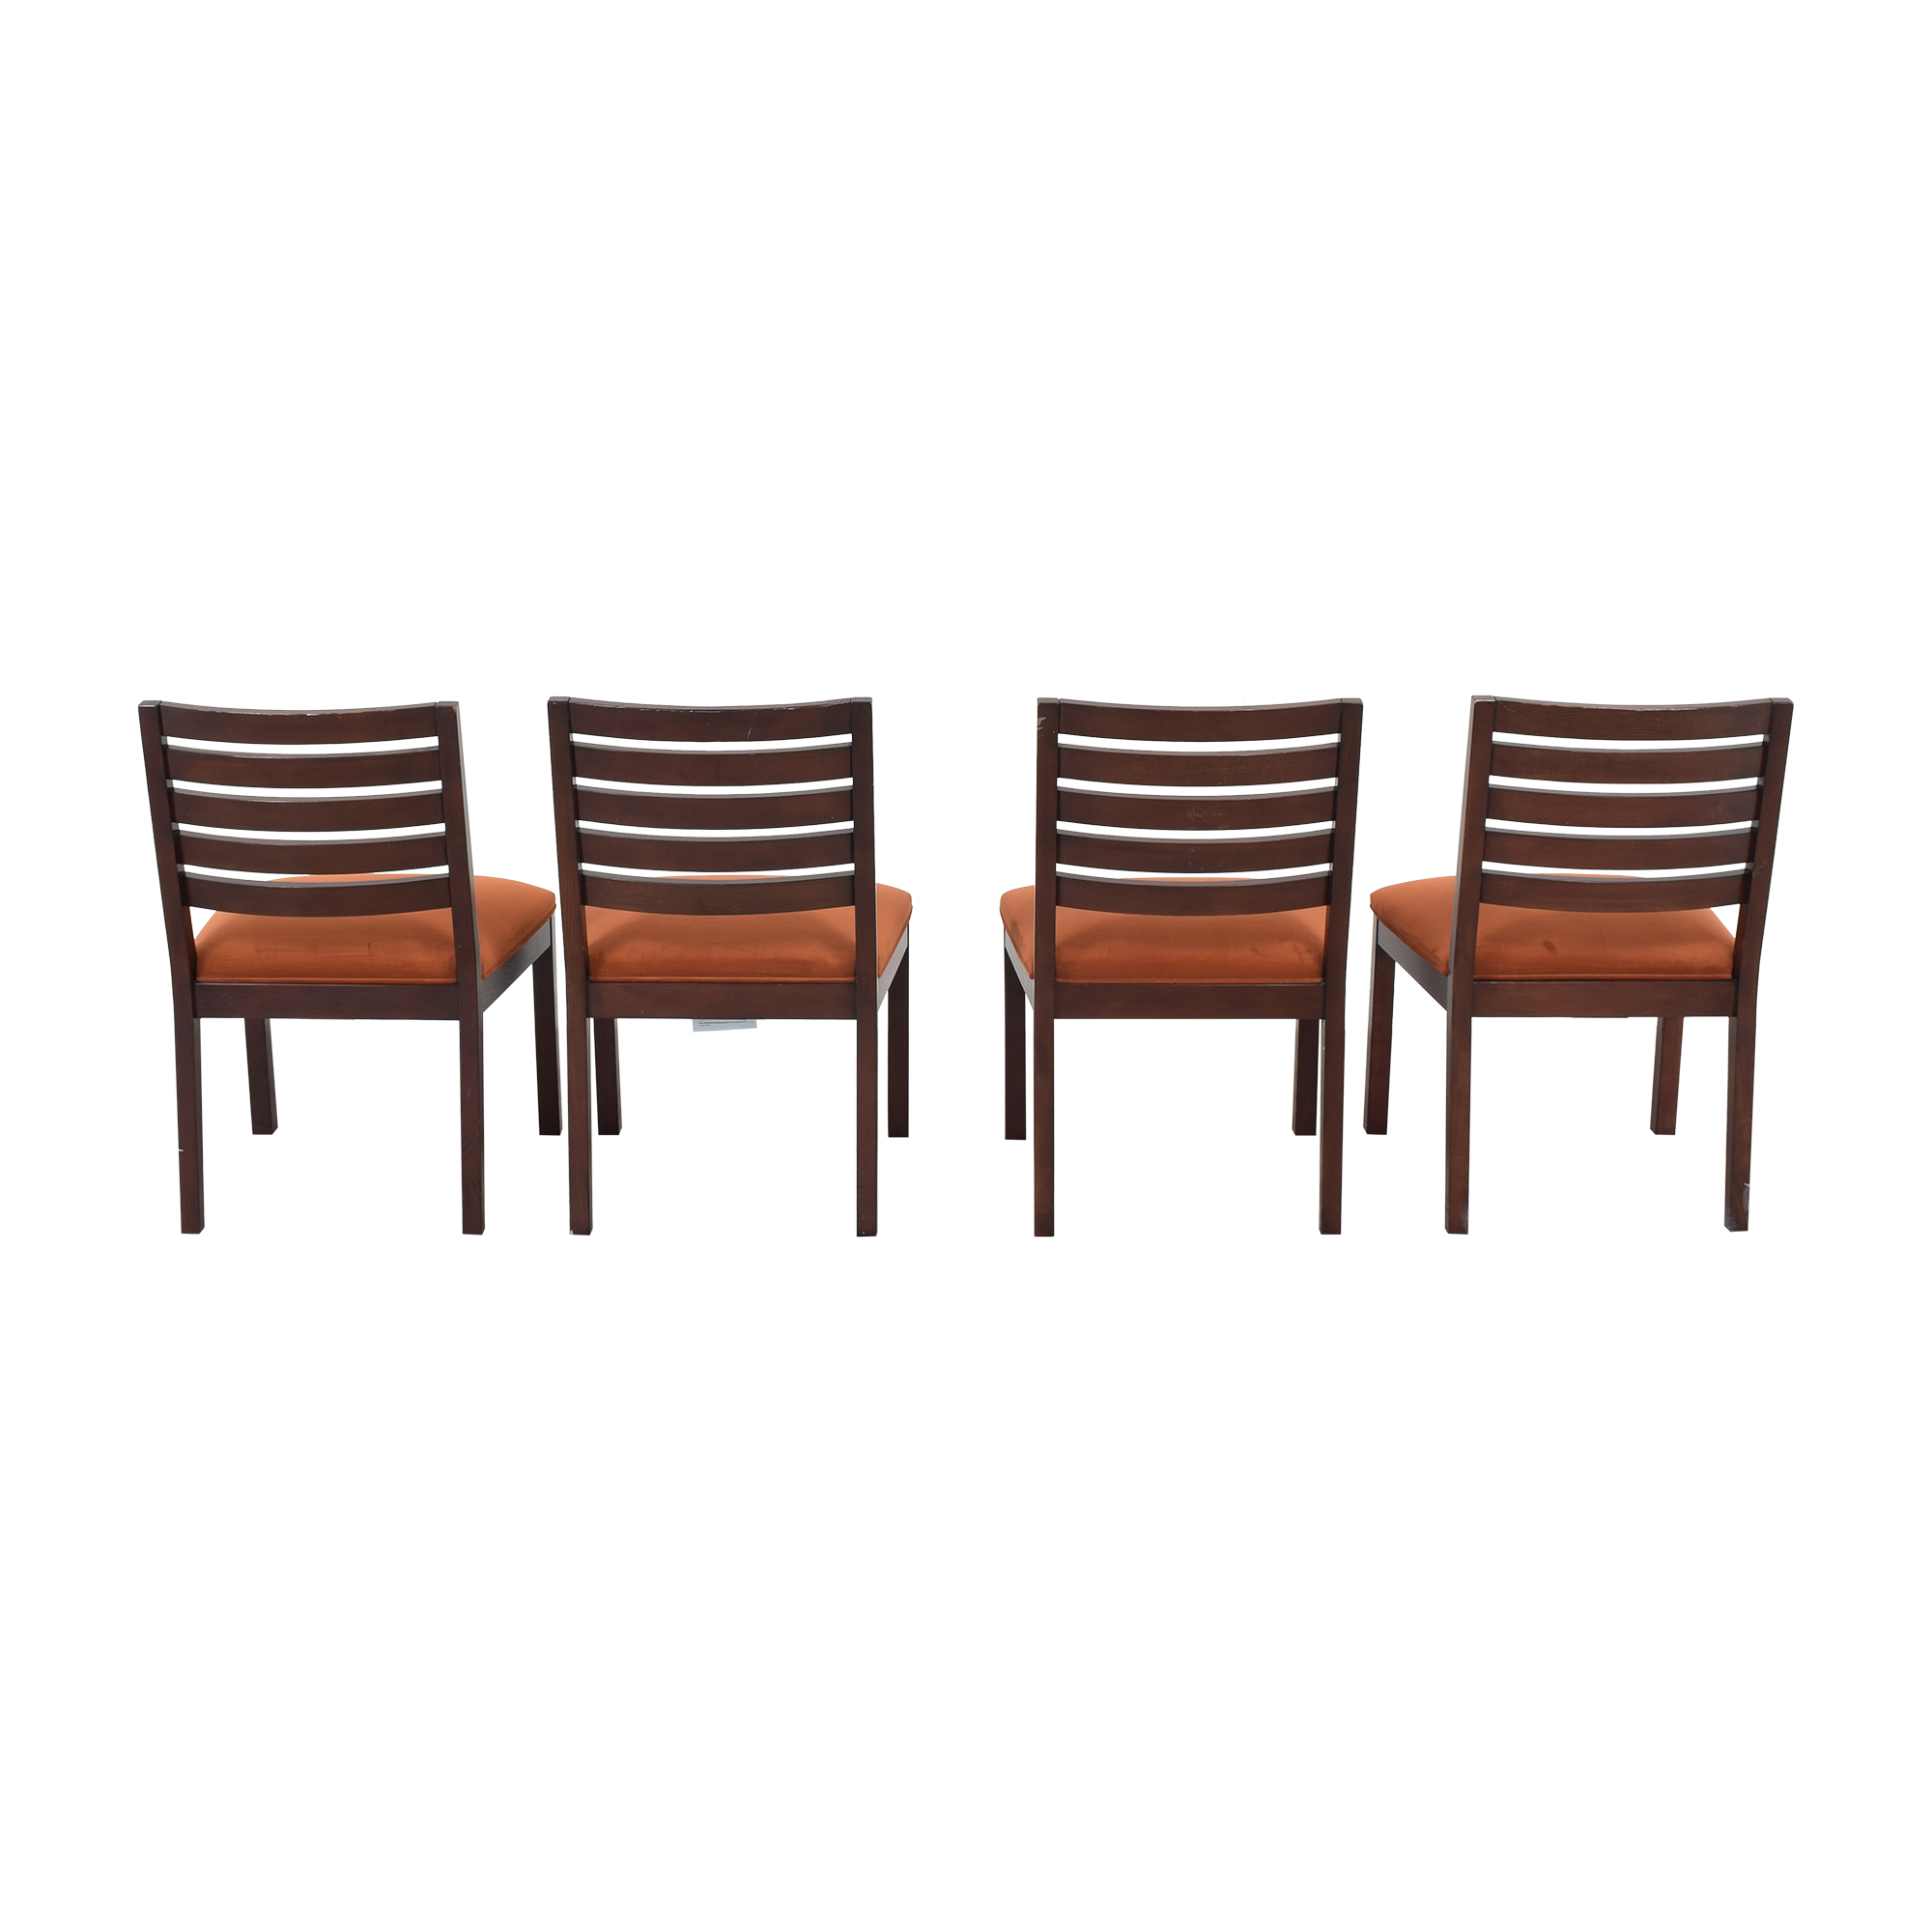 Ethan Allen Upholstered Dining Chairs sale